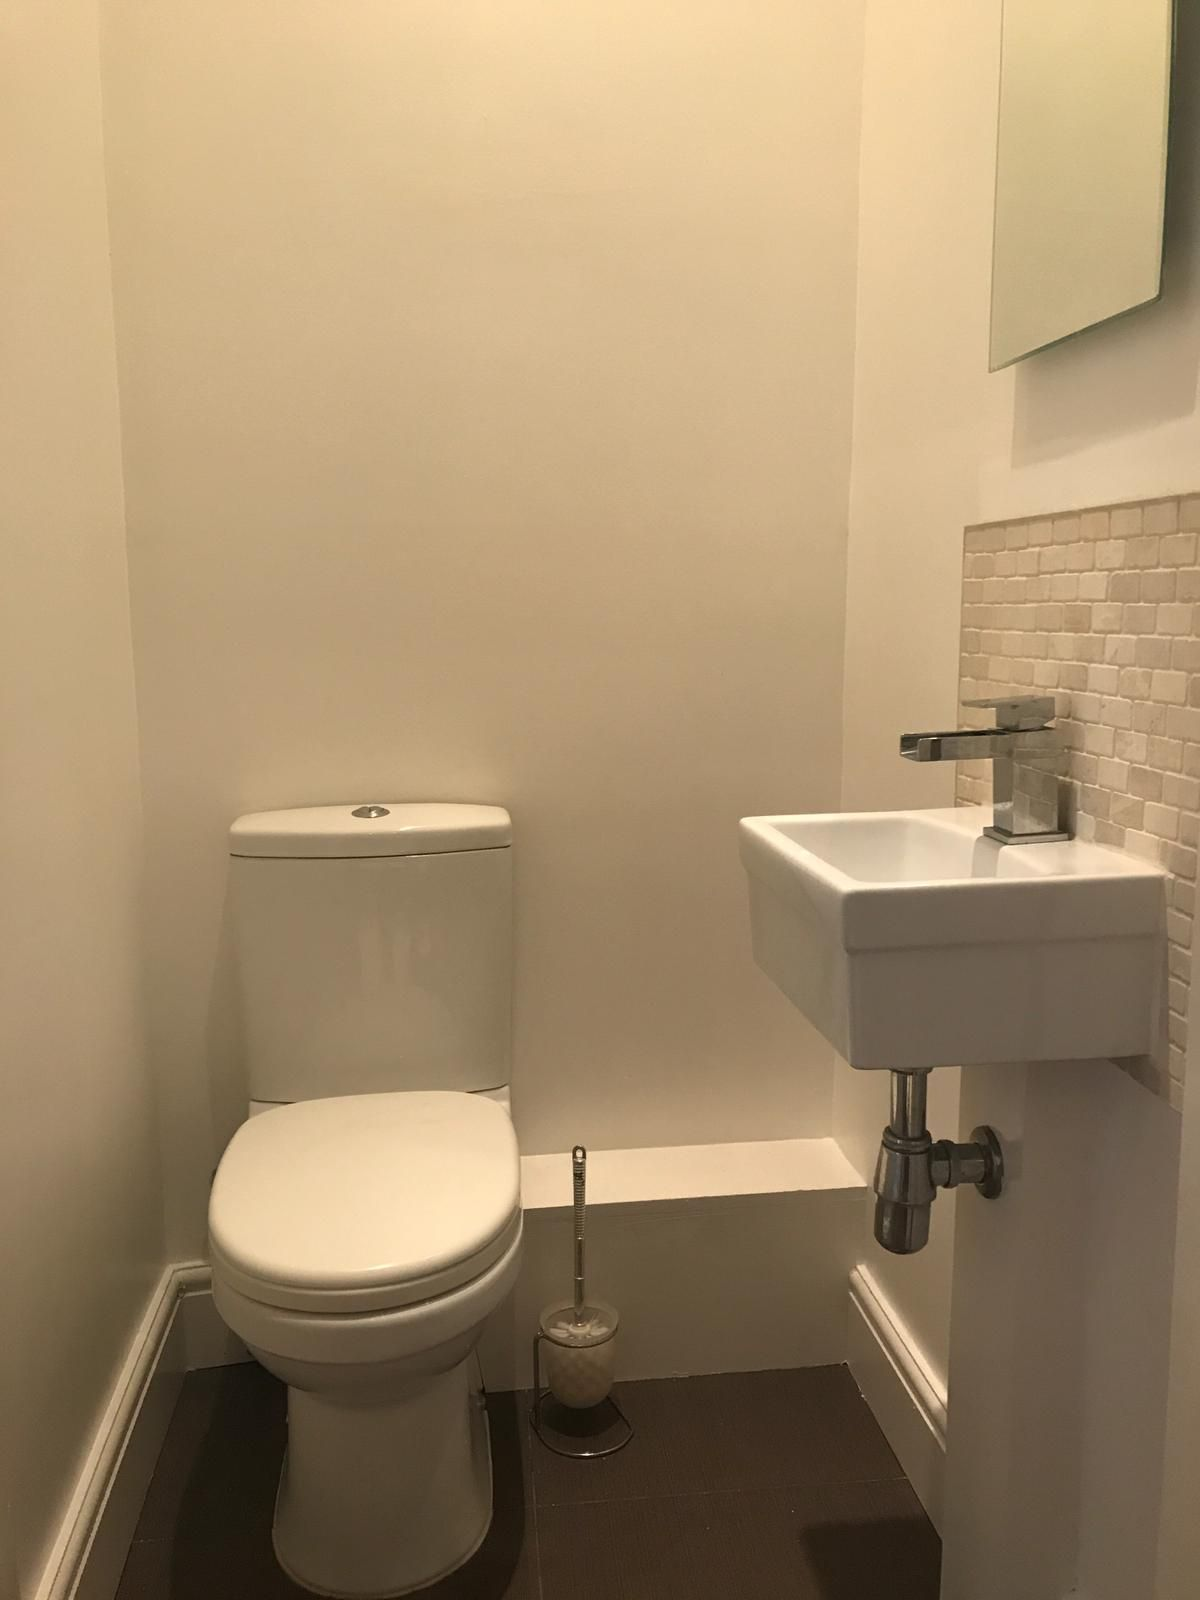 2 bedroom flat flat/apartment To Let in London - Toilet room